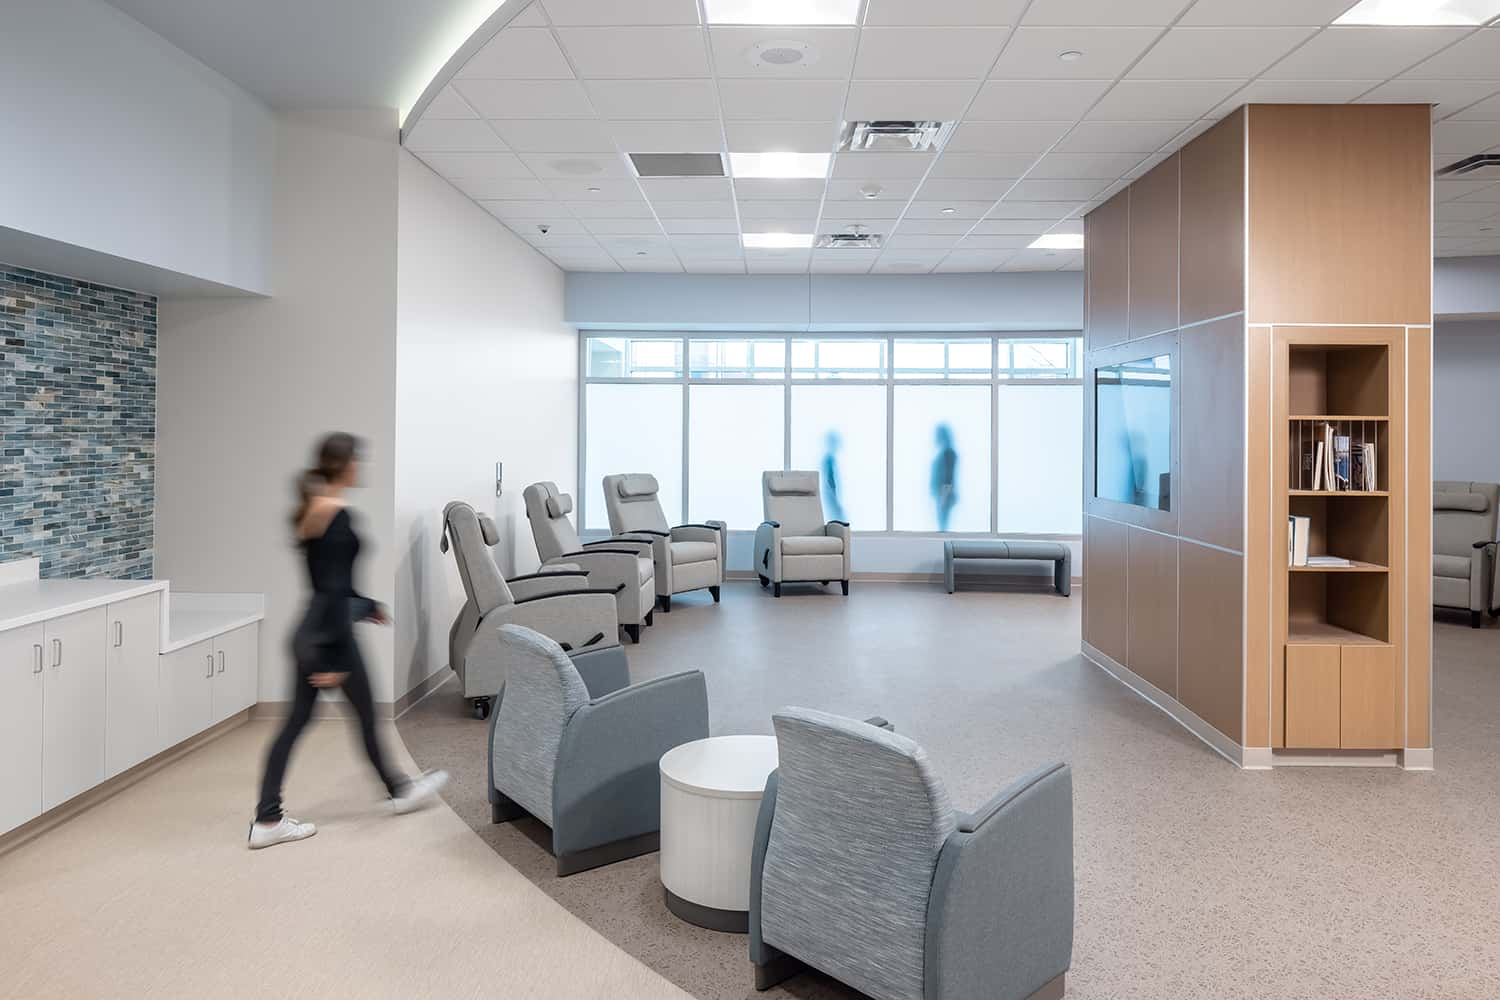 Alternate view of a group therapy space near patient refreshments.